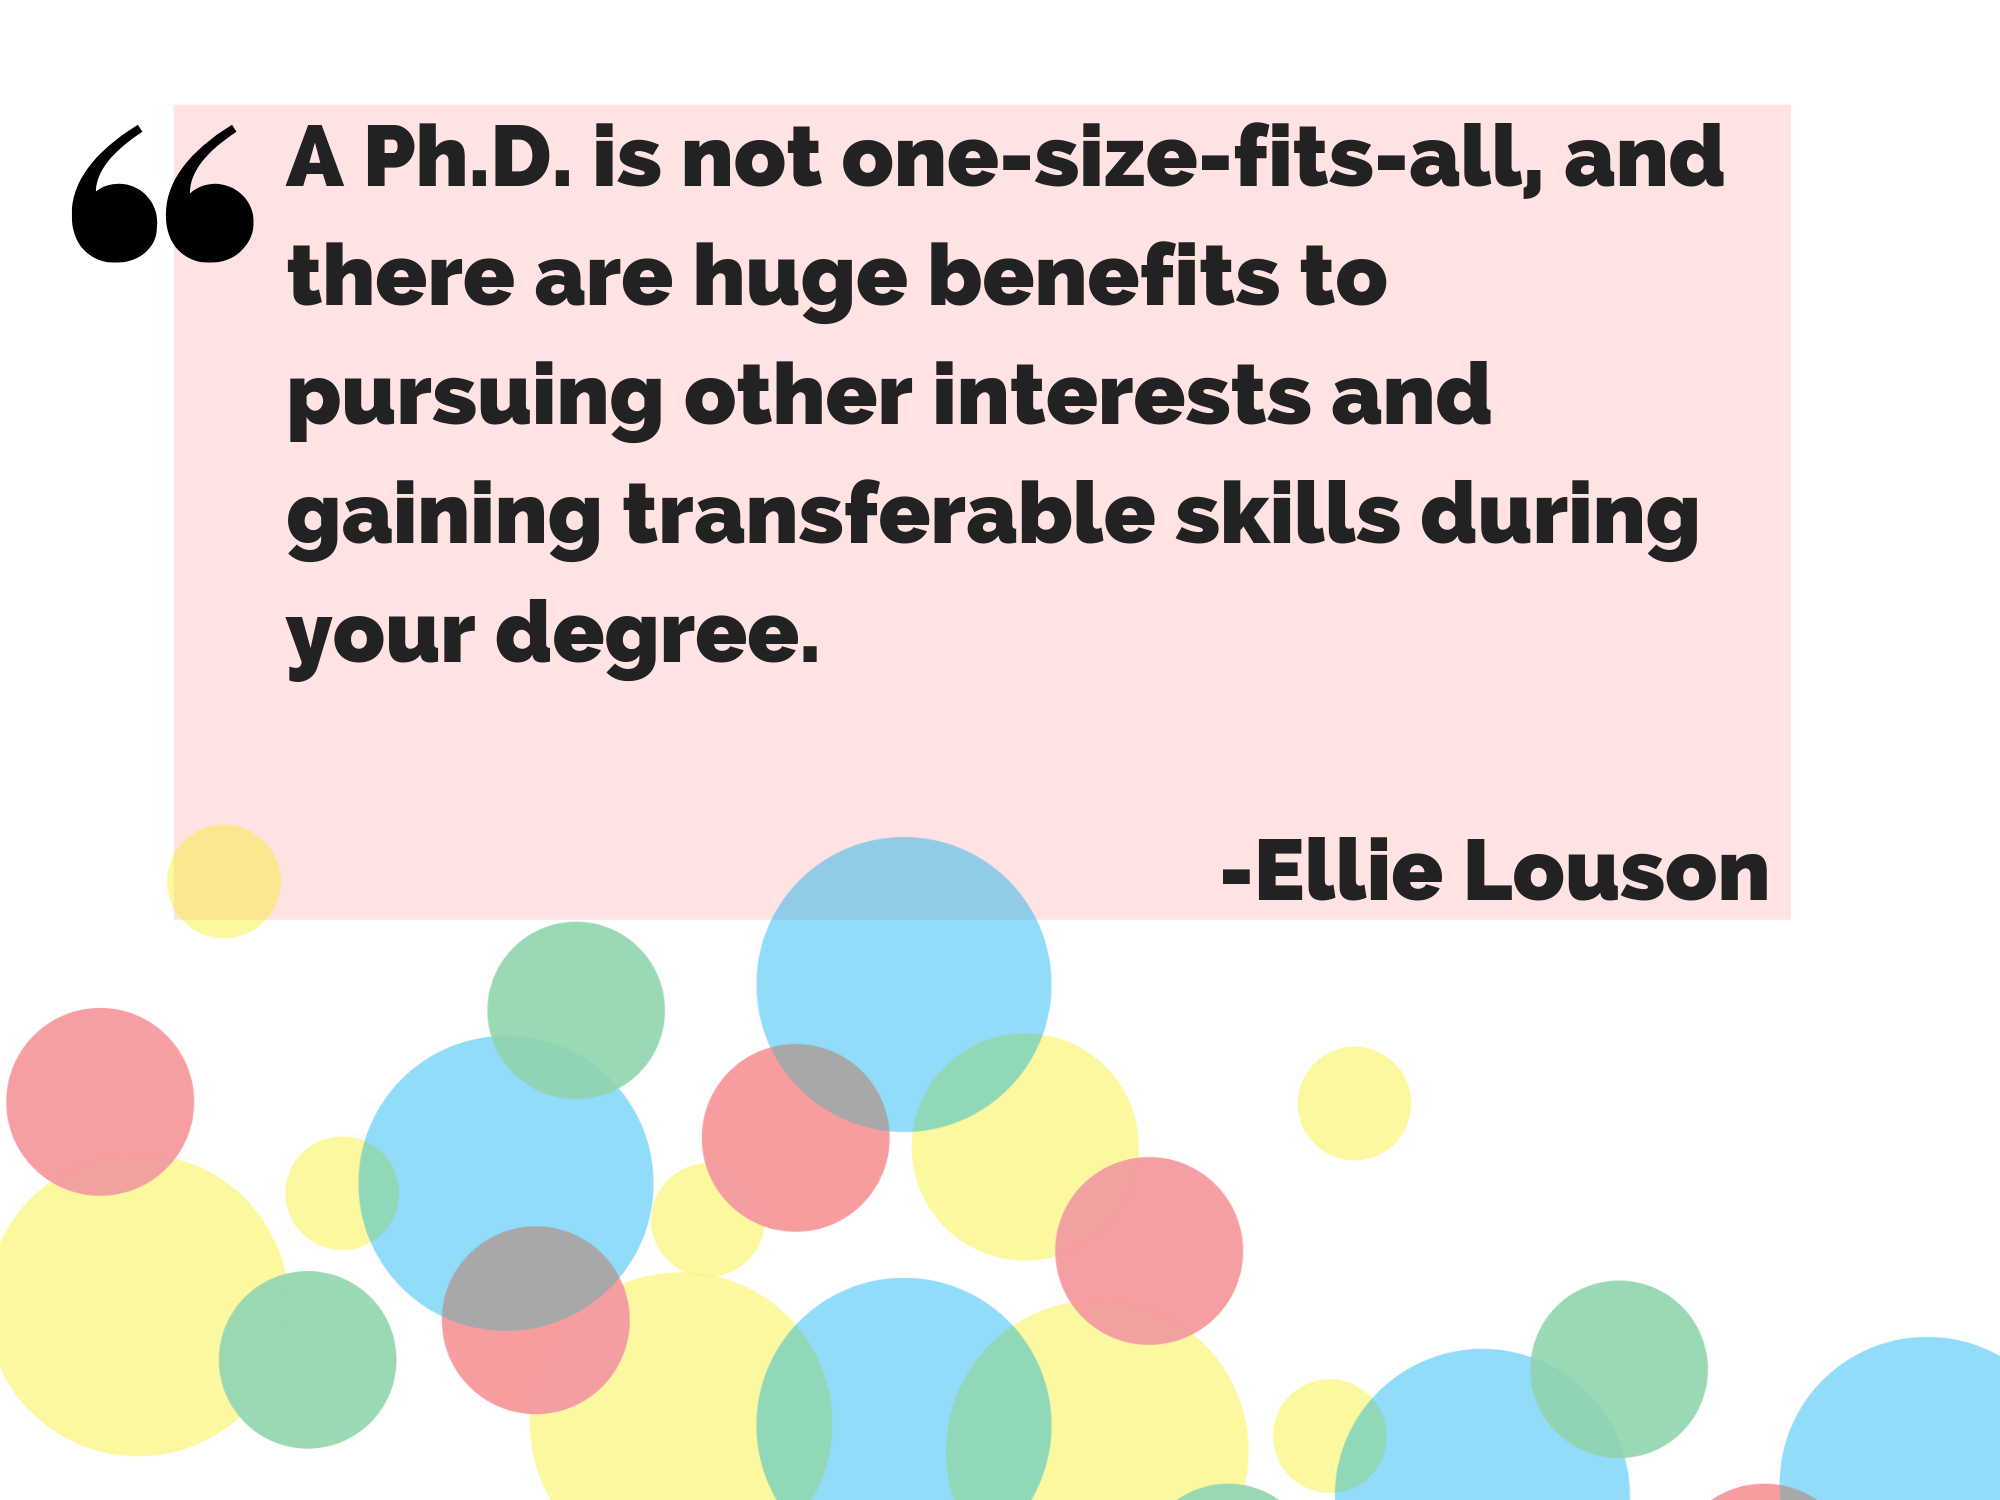 A Ph.D. is not one-size-fits-all, and there are huge benefits to pursuing other interests and gaining transferable skills during your degree. - Ellie Louson, MSU Hub